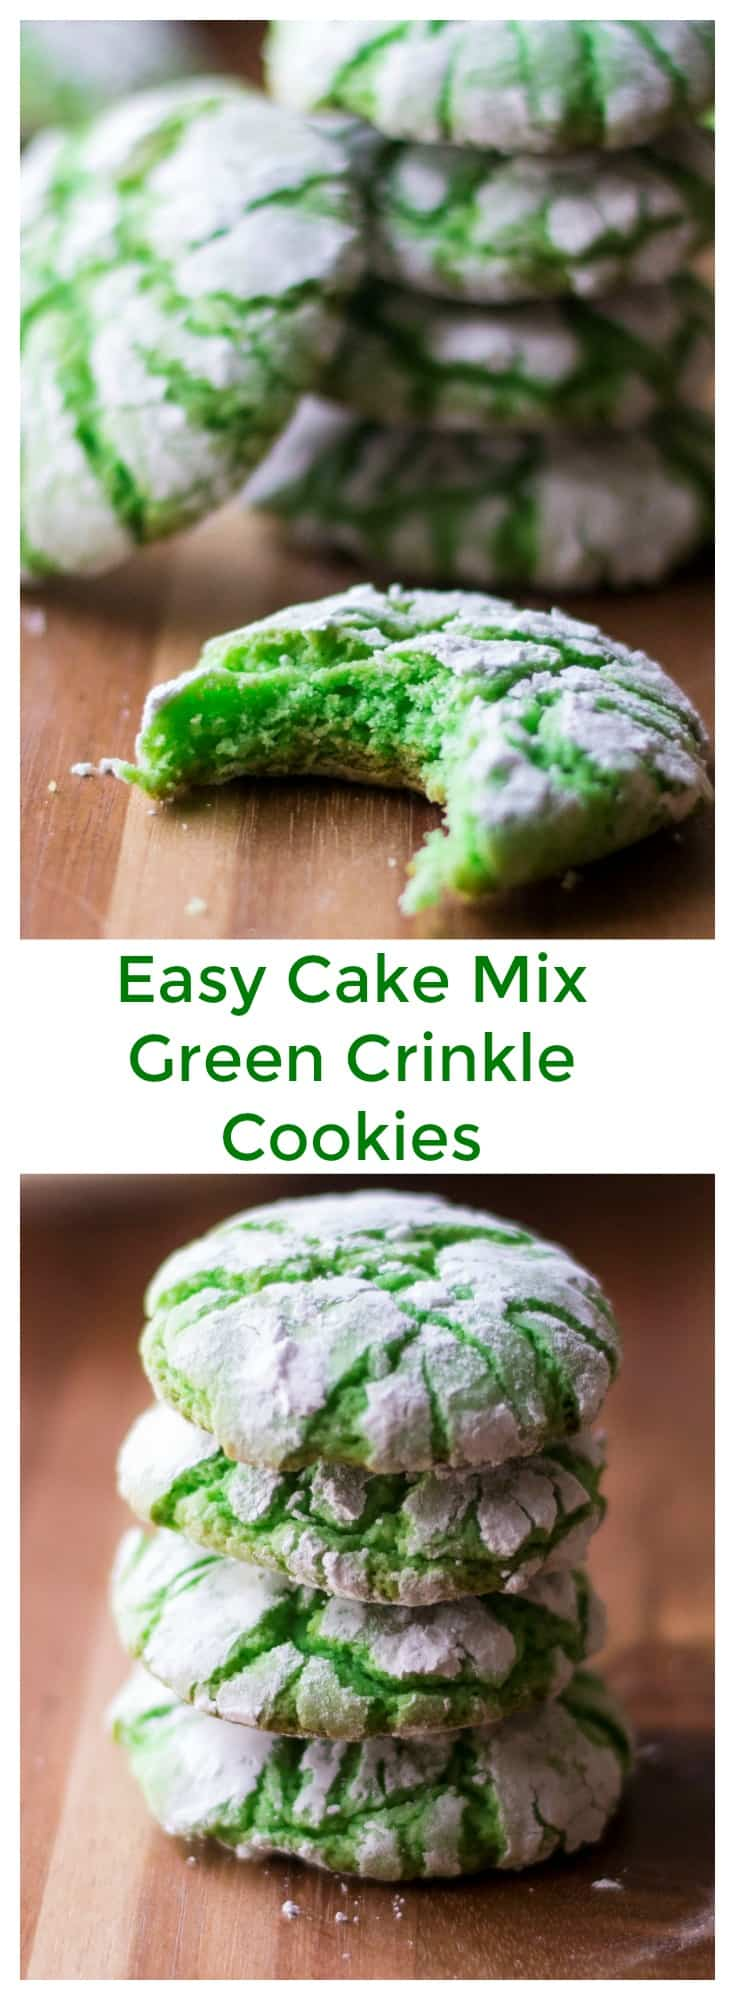 Green Crinkle Cookies are easy to make and fun to color. These soft baked green cookies made from store bought cake mix are fluffy and sweet and the perfect way to celebrate St. Patrick's Day, Easter or Christmas! #greencookies #greenfood #crinklecookies #christmascrinklecookies #christmascookies #stpatricksdaycookies #stpatricksdayfood #stpatricksdayfoodideas #eastercookies #cakemixcookies